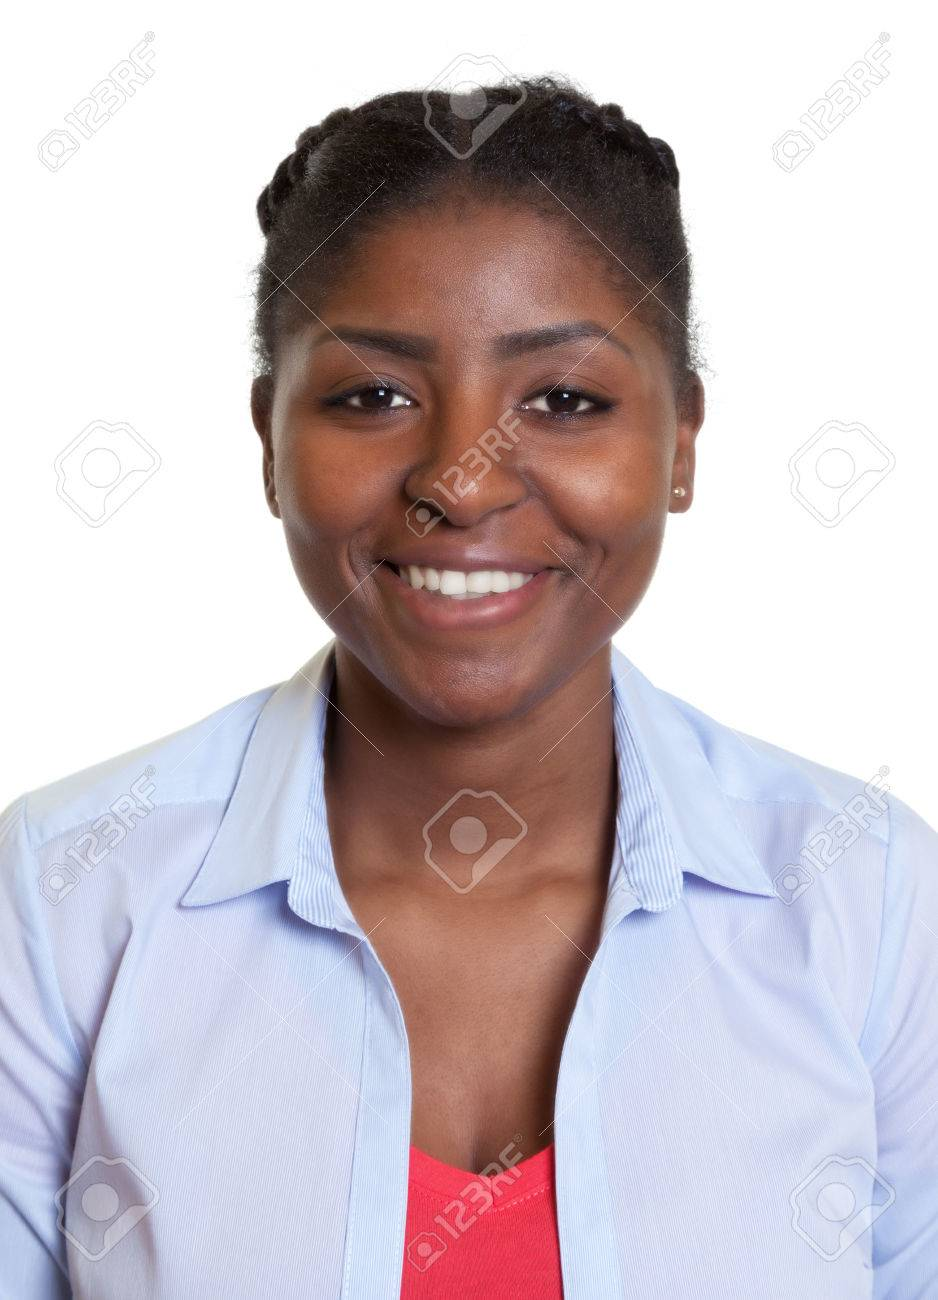 Passport picture of a young african woman - 44371661